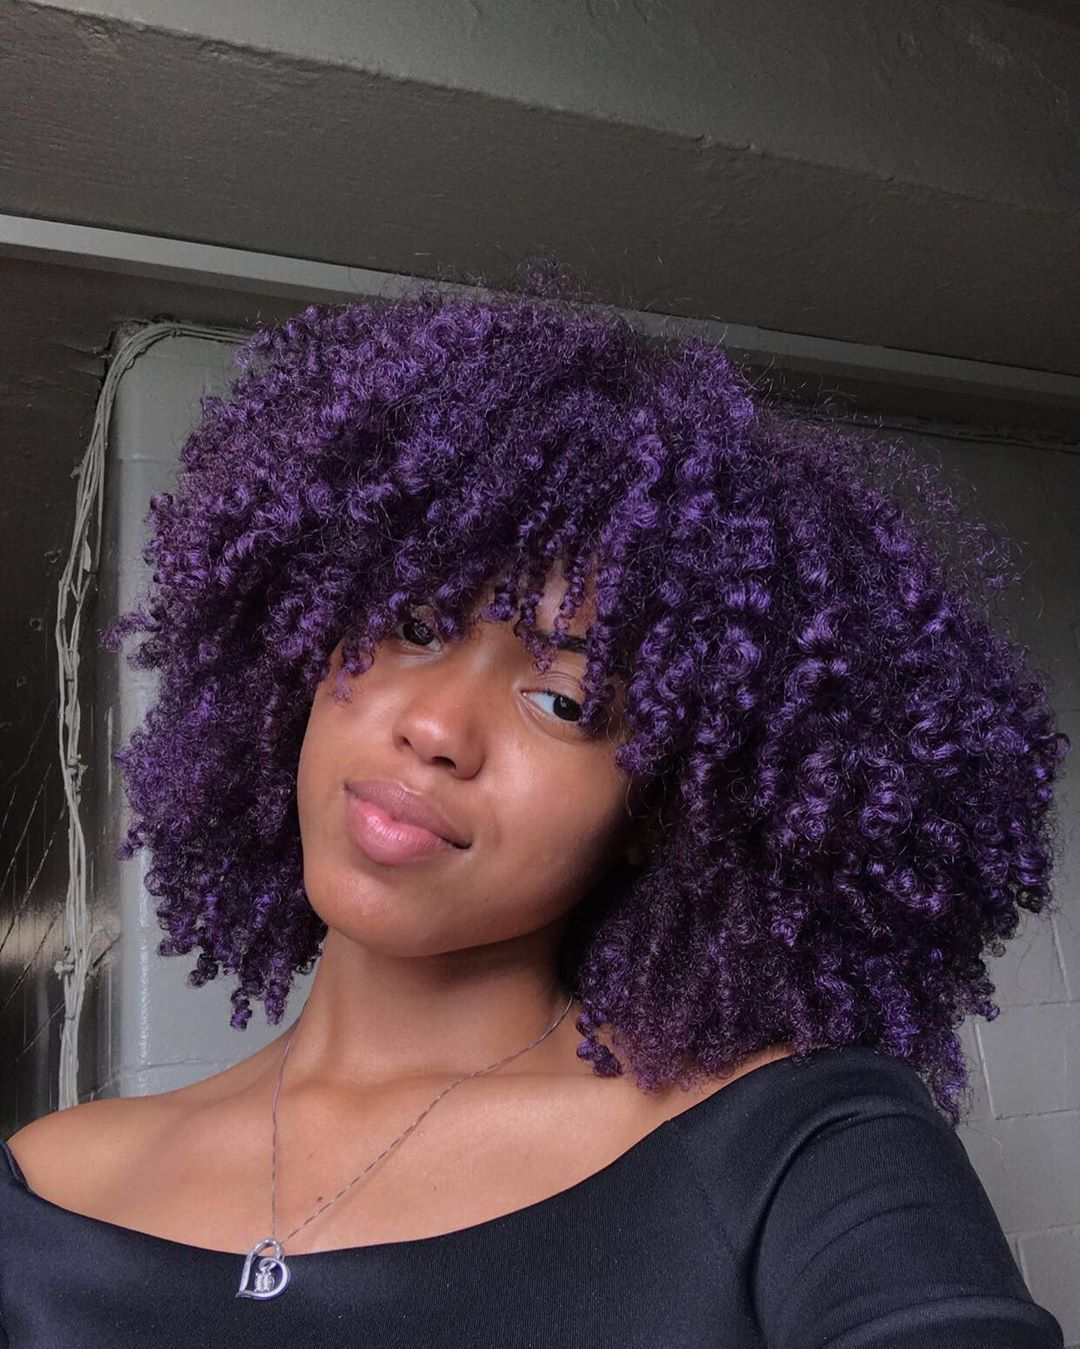 Crisleidis Ceballo On Instagram I Think The Purple Hair Suits Me What Do You Think Hair Wa Purple Natural Hair Natural Hair Styles Natural Hair Color